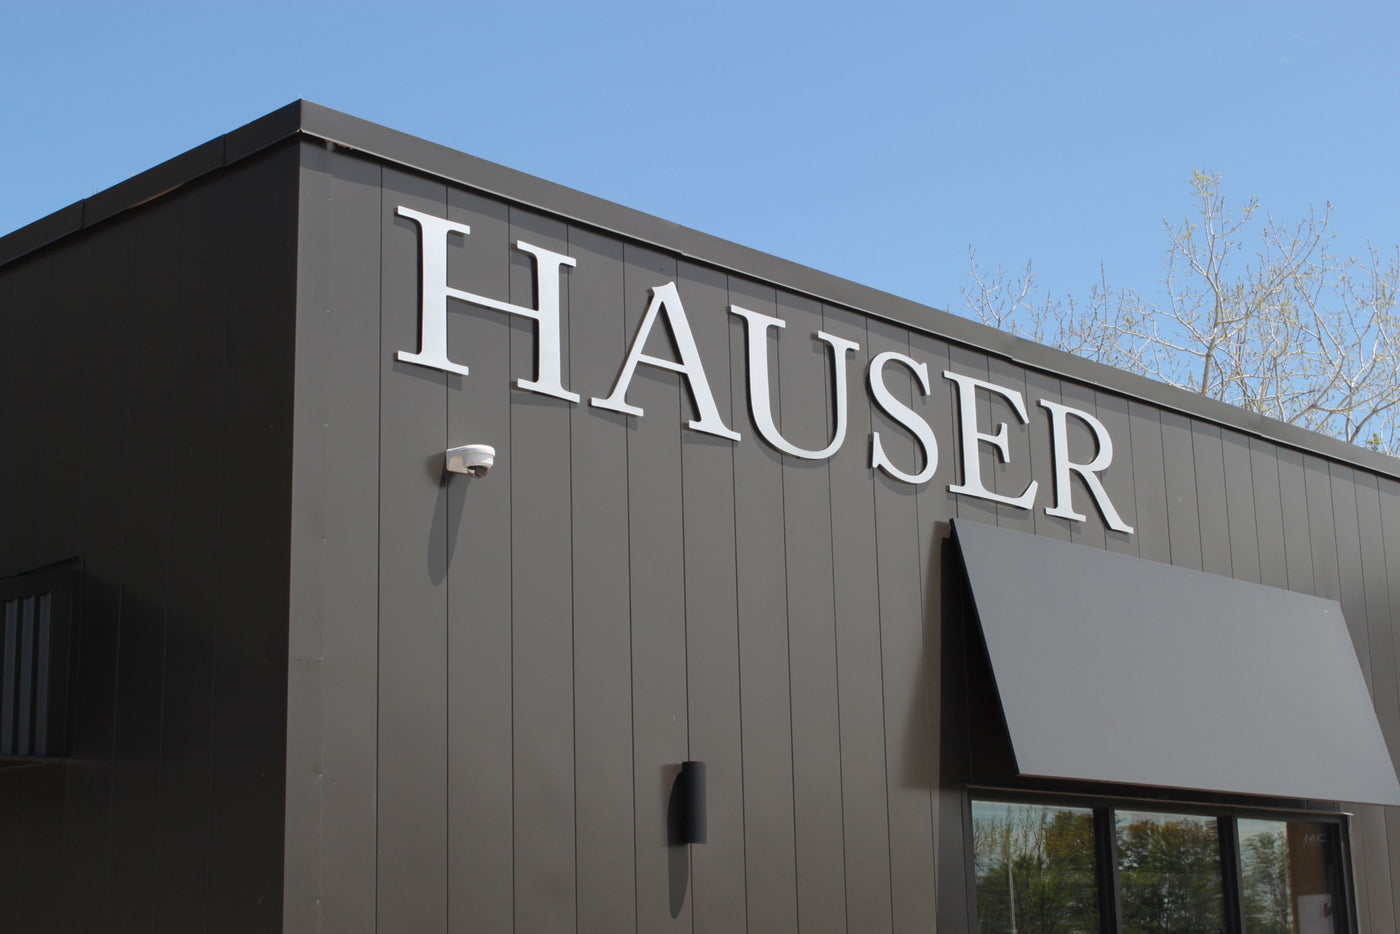 Outside of Hauser Storefront showing Hauser sign